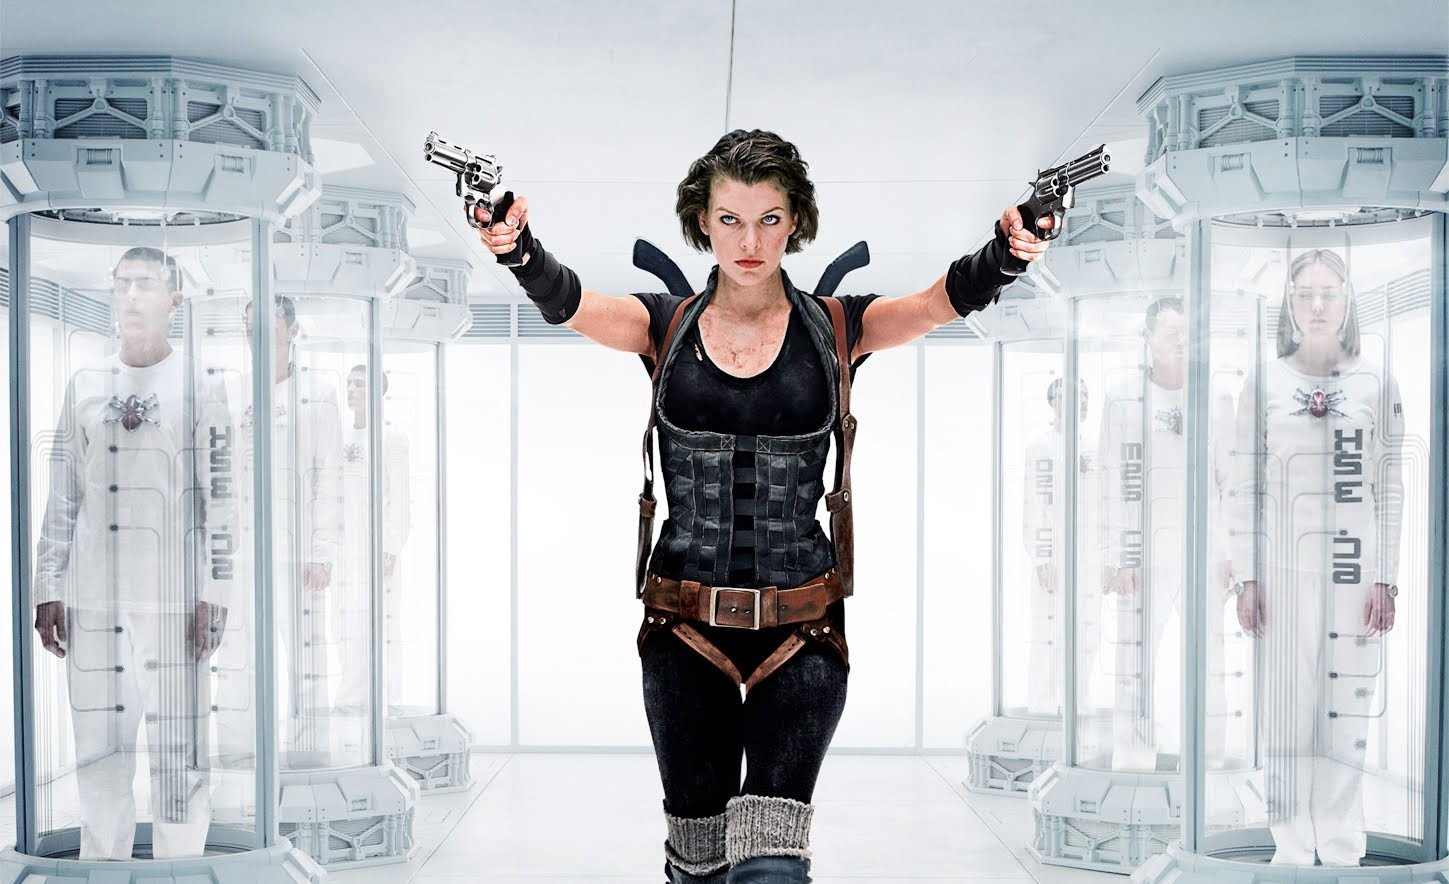 Resident Evil Afterlife 3D Review: It Was Awesome!